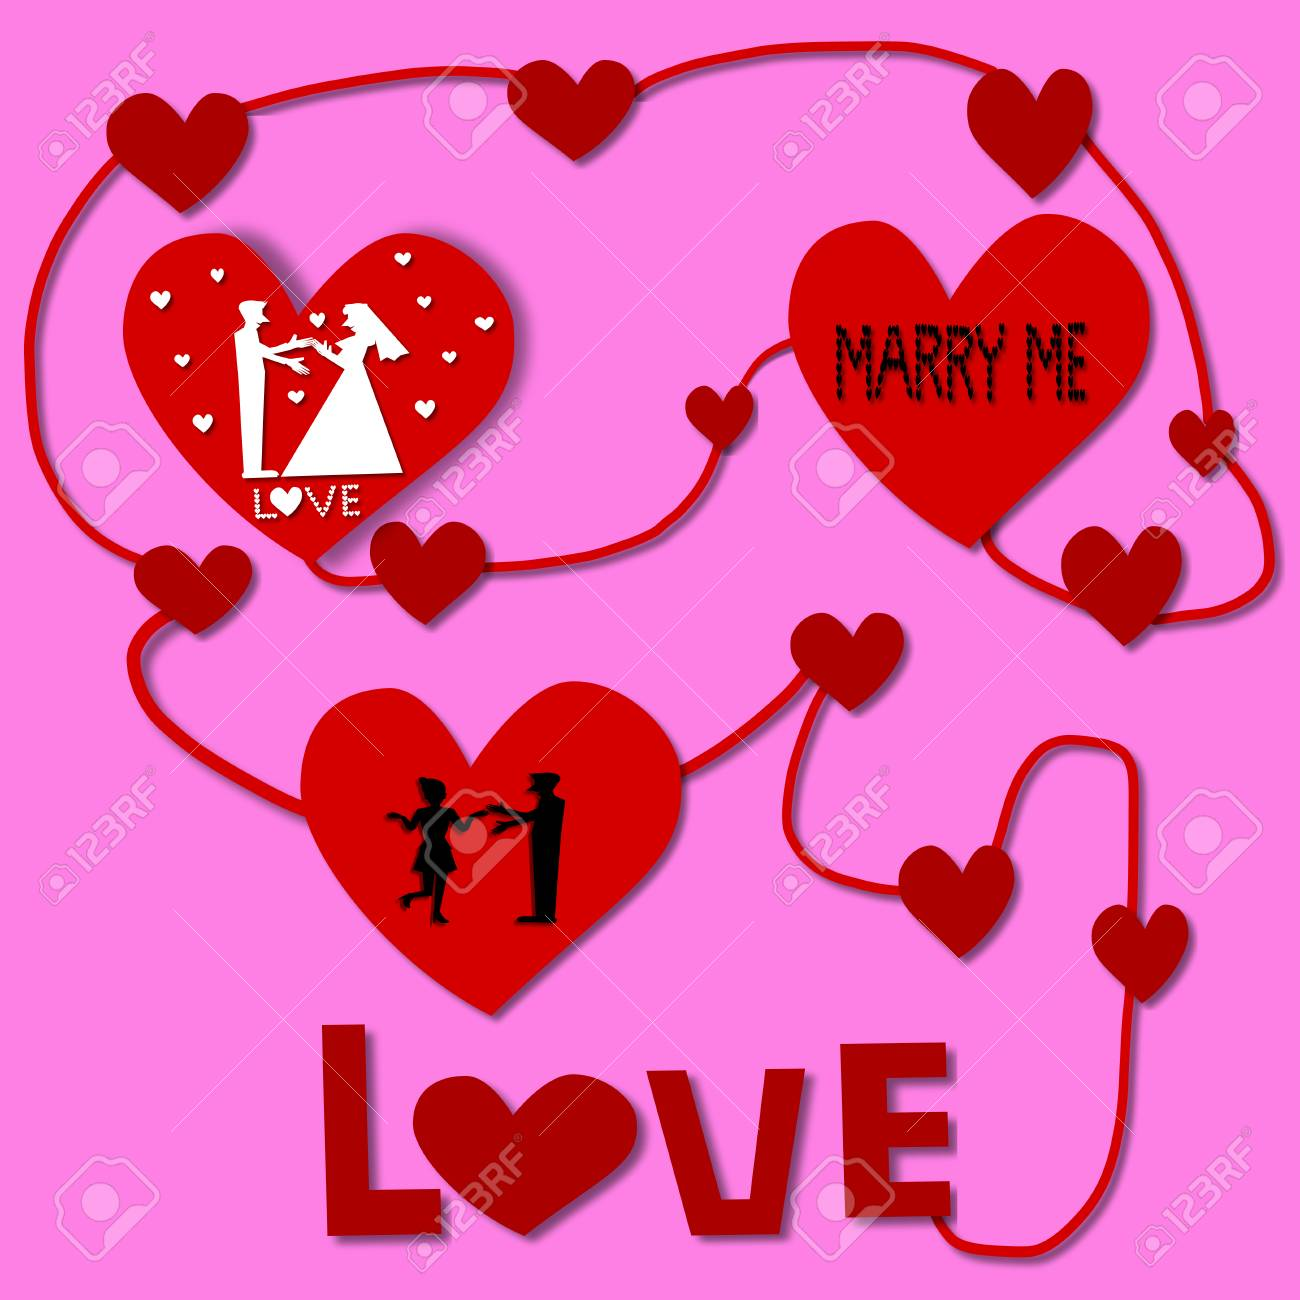 Love Cycle Silhouette Couple Love In Red Heart Illustration Stock